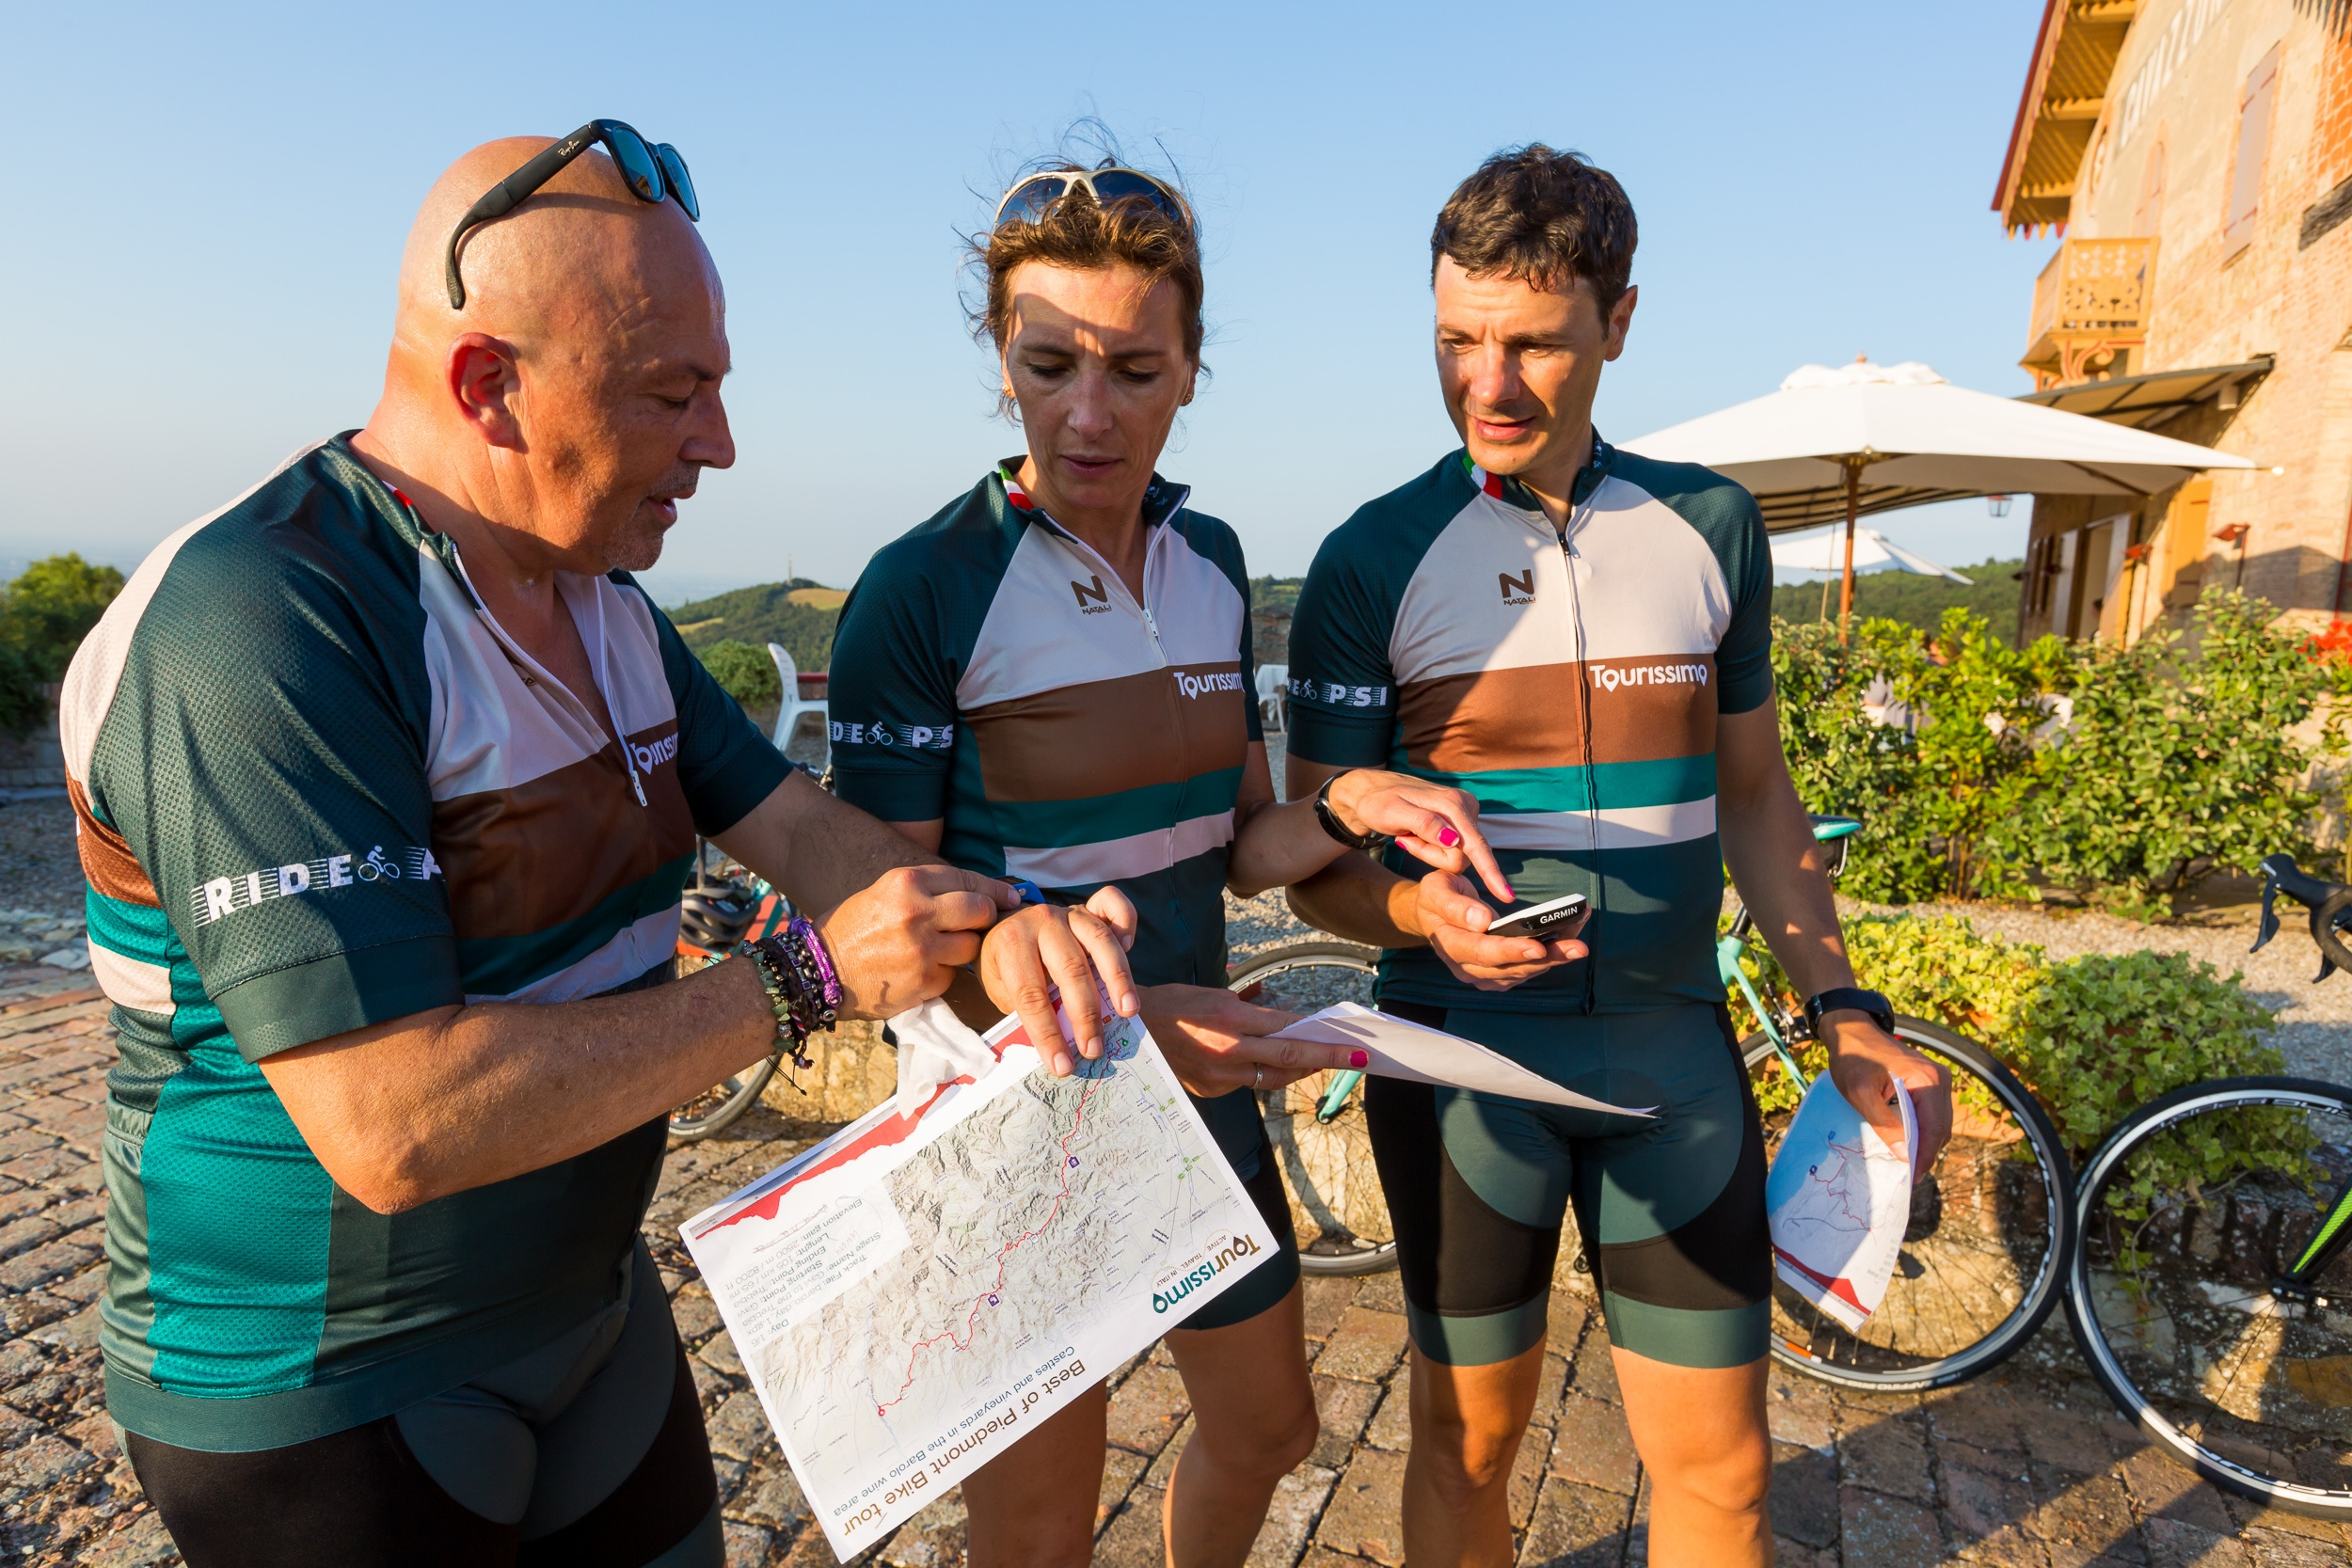 Top 10 Questions on Group Bike Tours